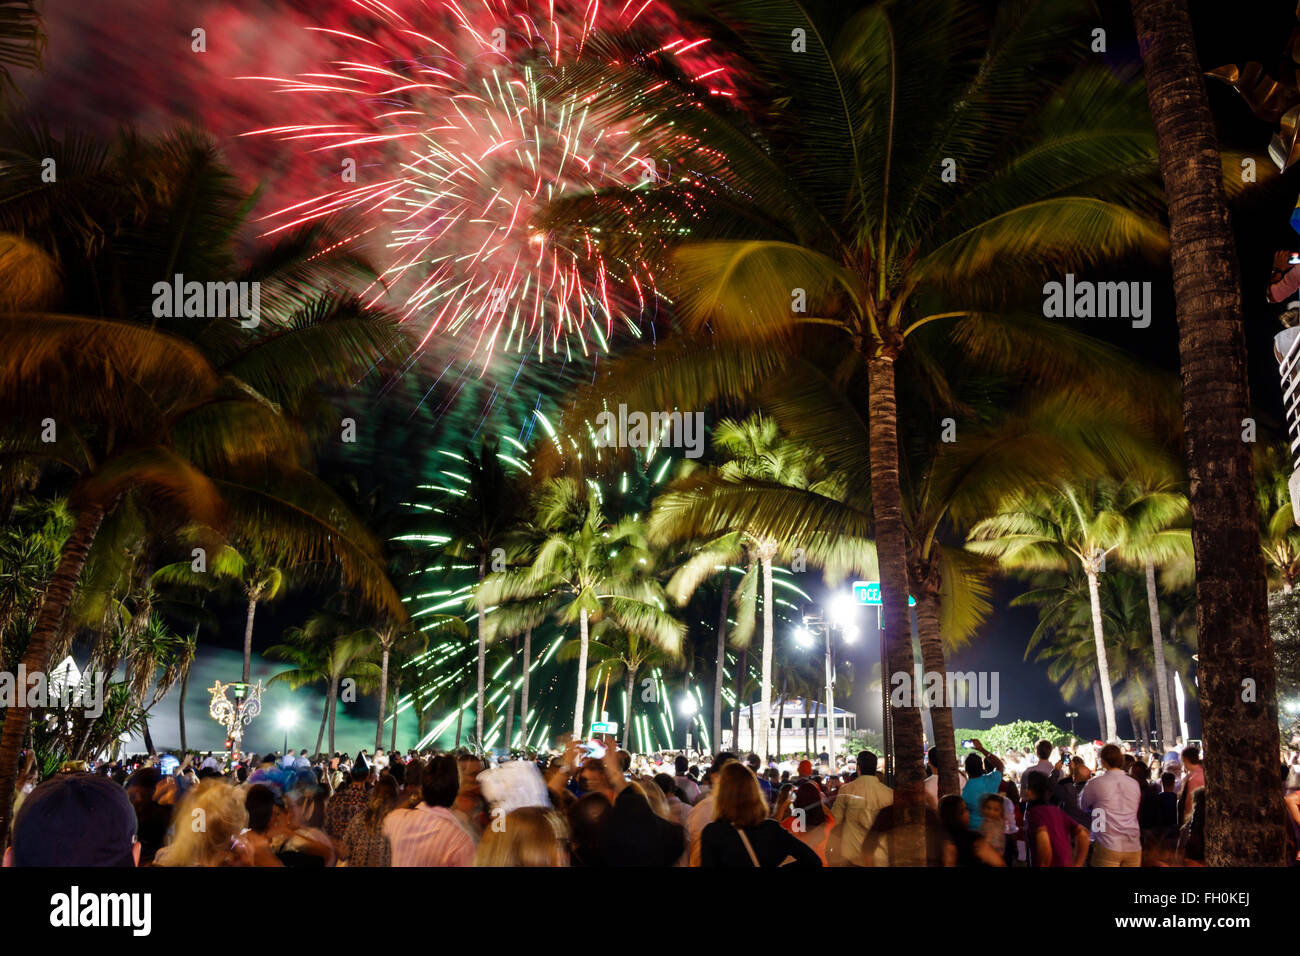 Miami Beach Florida Ocean Drive New Year s Eve celebration fireworks     Miami Beach Florida Ocean Drive New Year s Eve celebration fireworks crowd  display palm trees